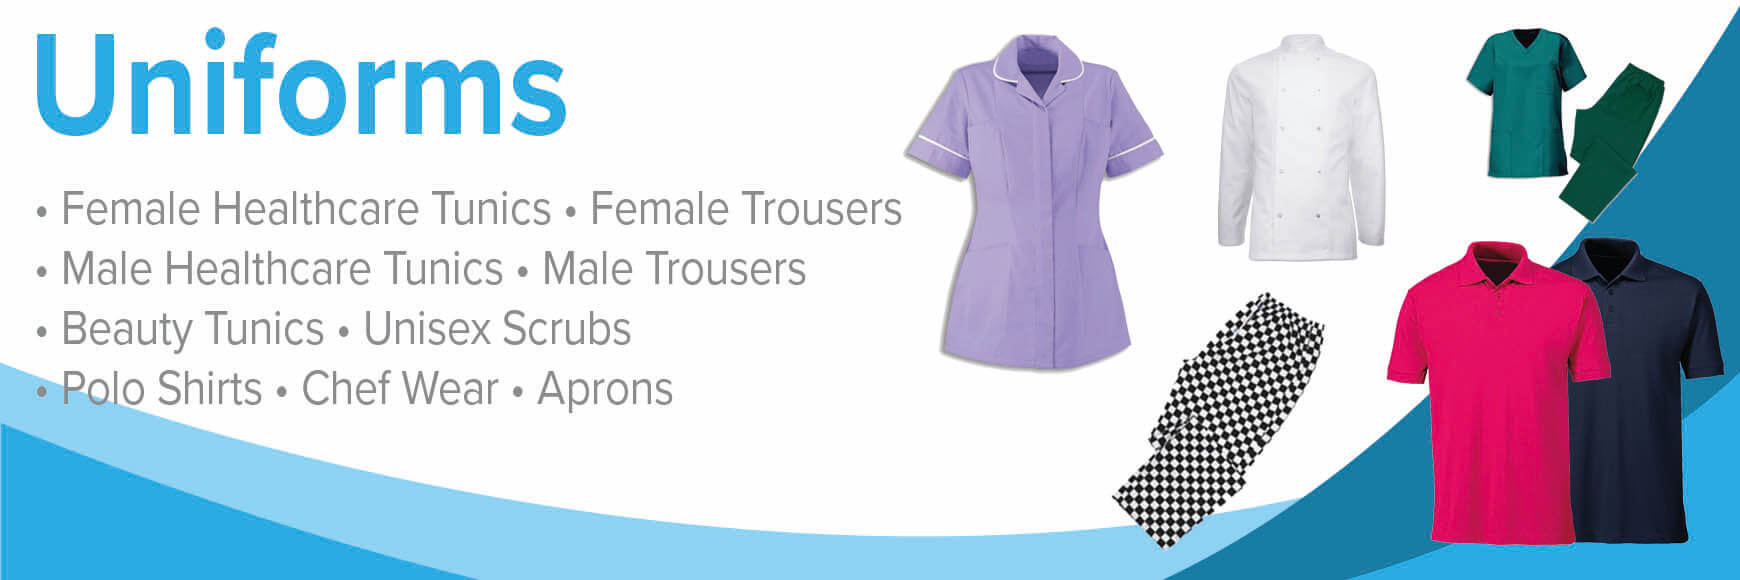 6a4a107d7dd ... care, beauty salons, hair dressing chef wear and many more. All of our  uniforms are from Alexandra, a leading provider of workwear, corporate  clothing ...